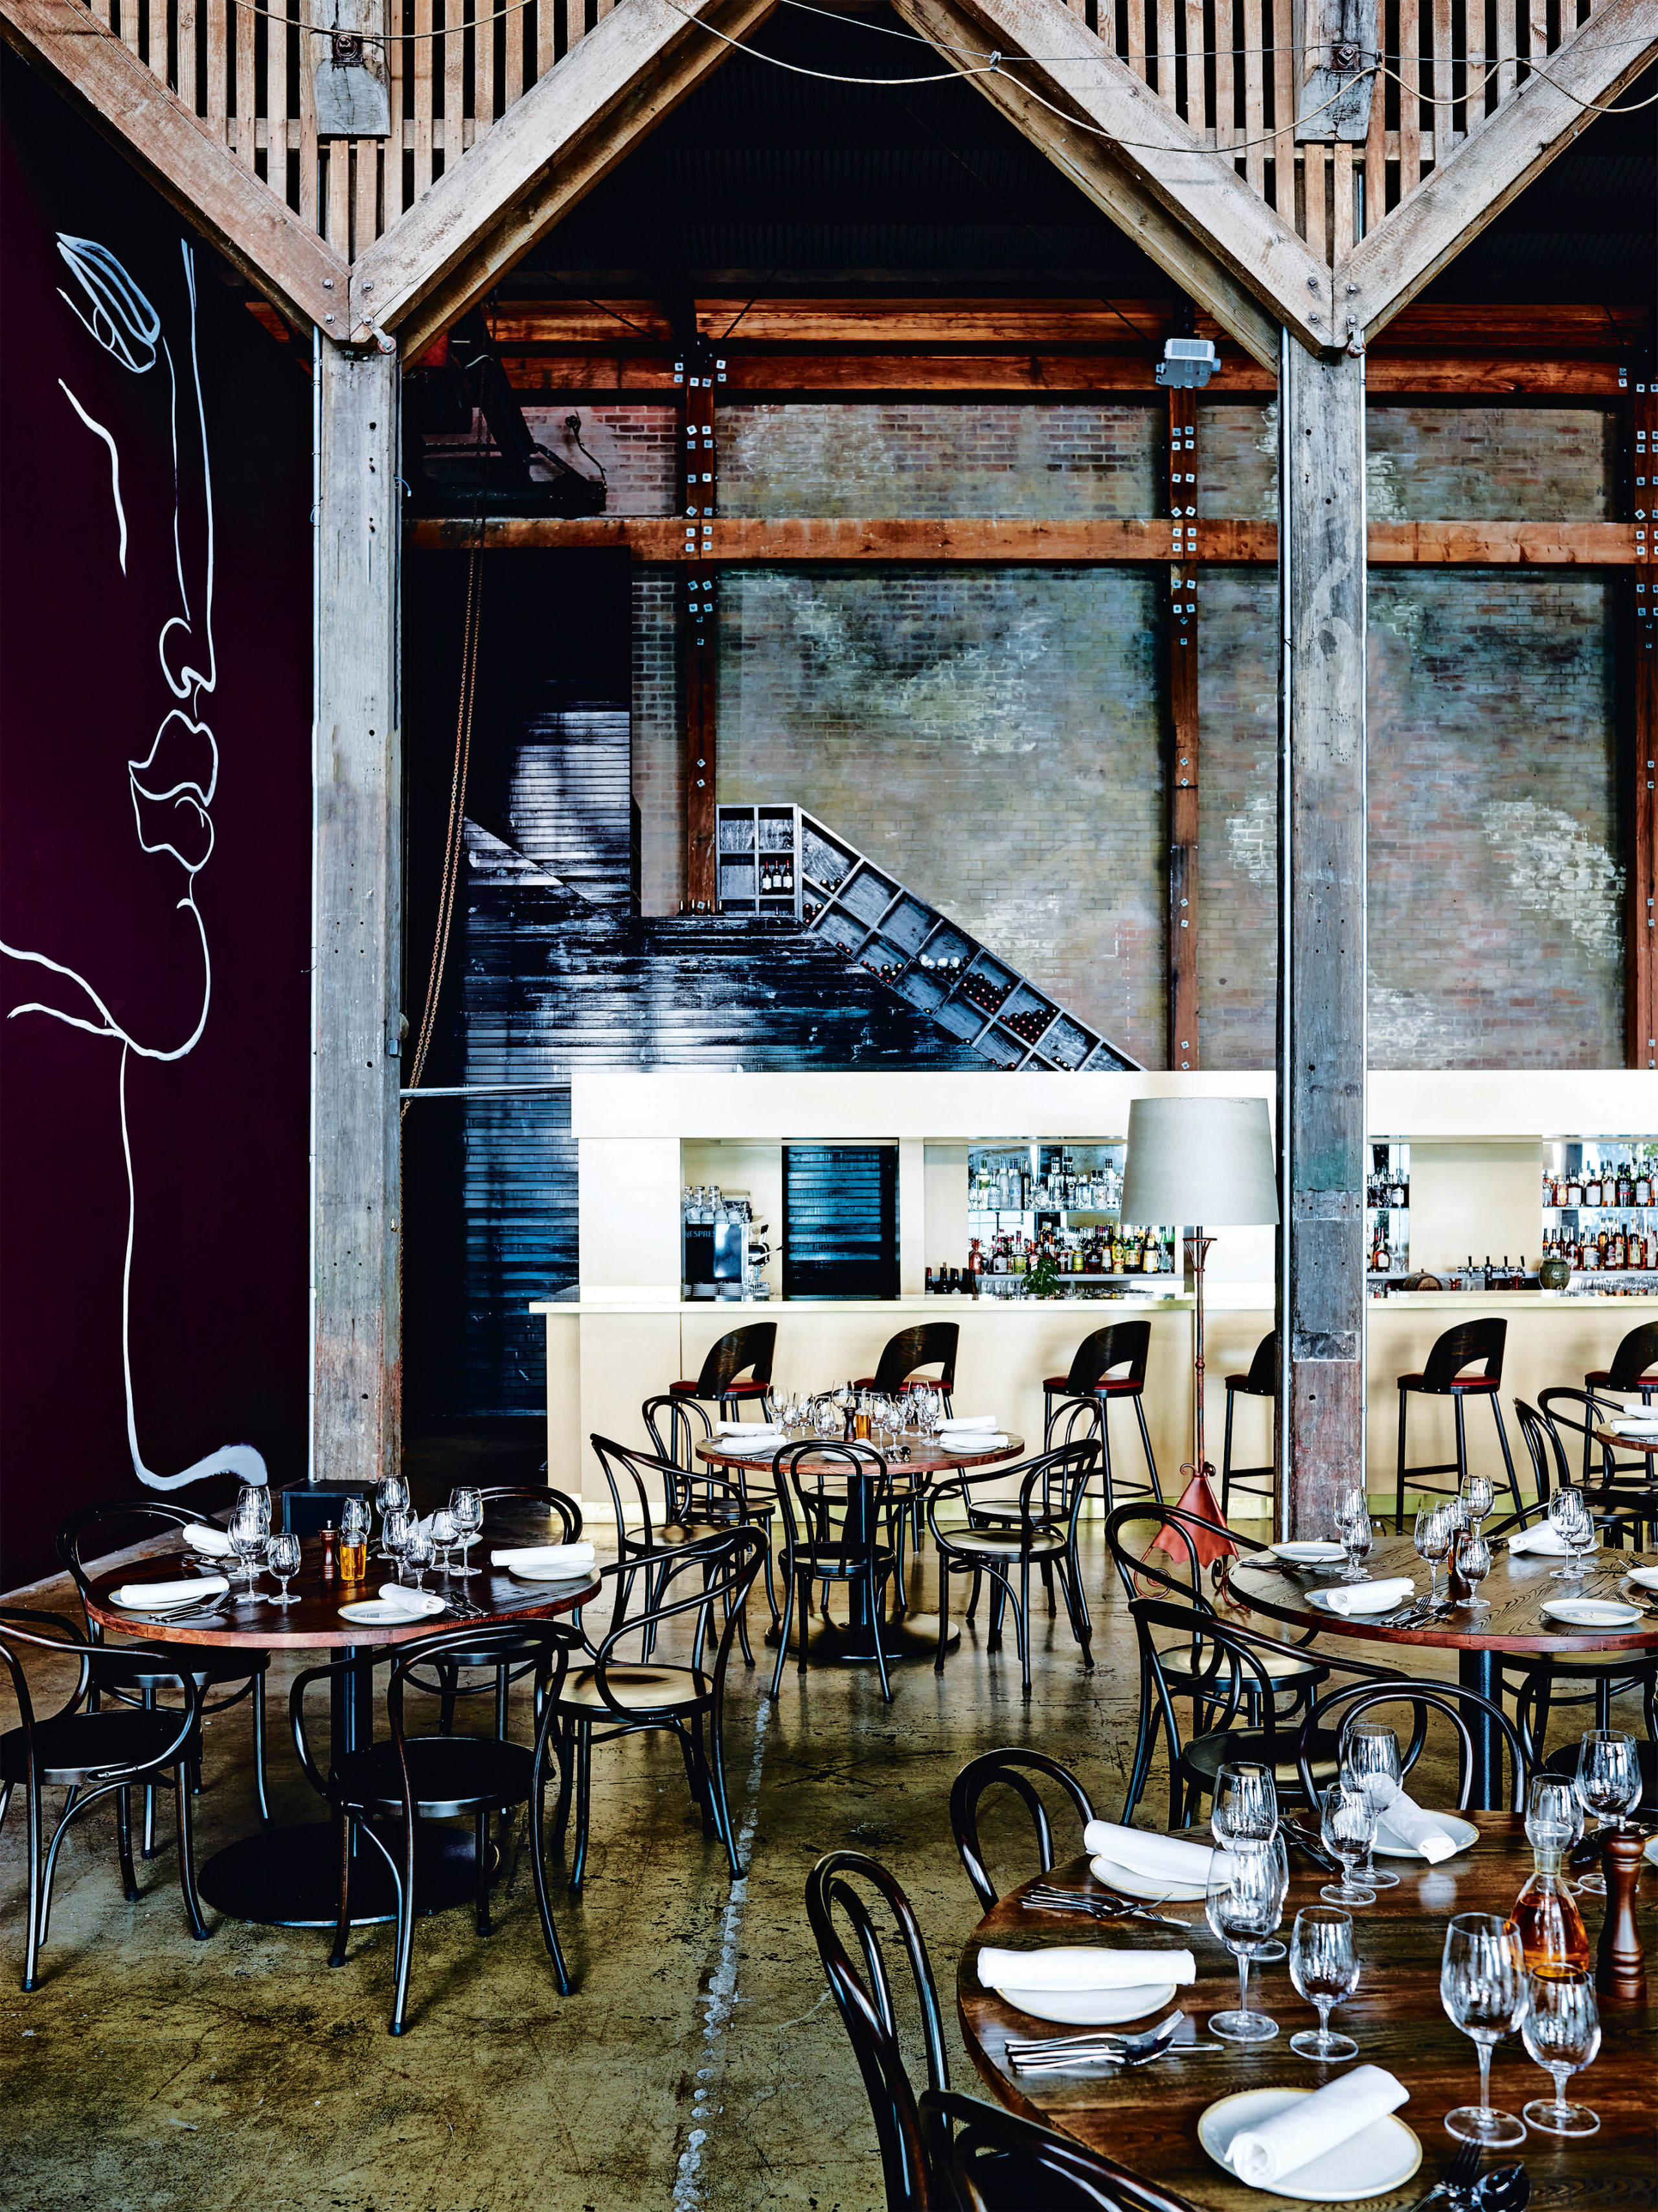 :Attention to colour brings a sense of intimacy dining room, furniture, interior design, restaurant, table, black